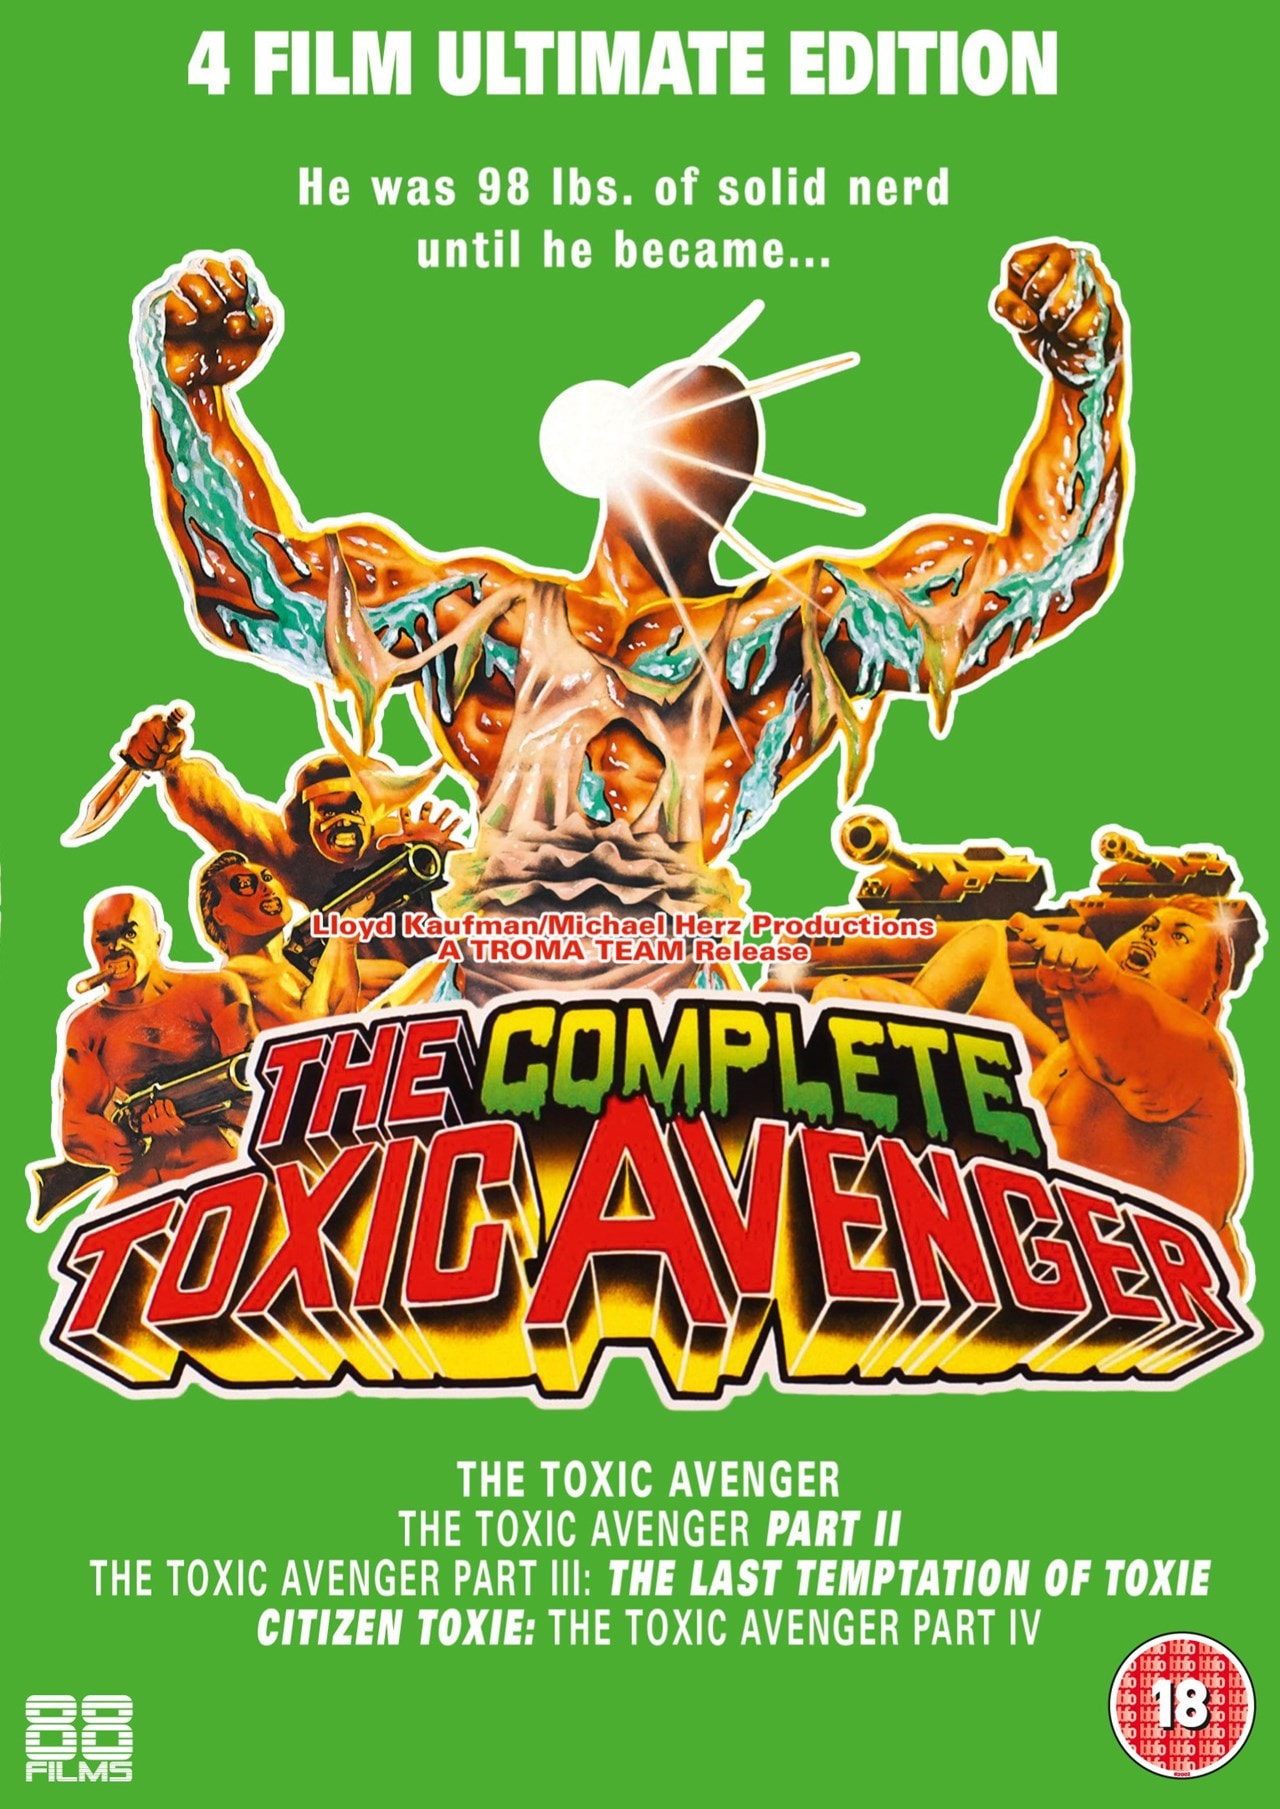 The Complete Toxic Avenger - 1